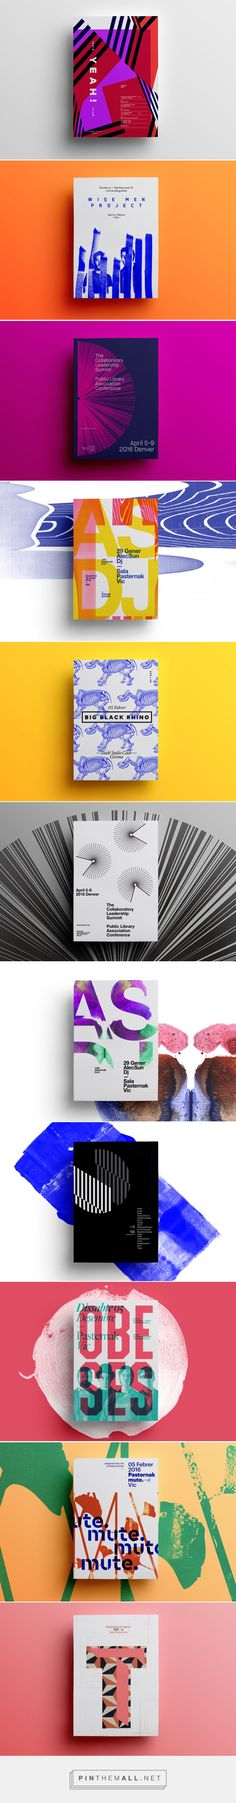 Design covers. #graphicdesign #covers #print